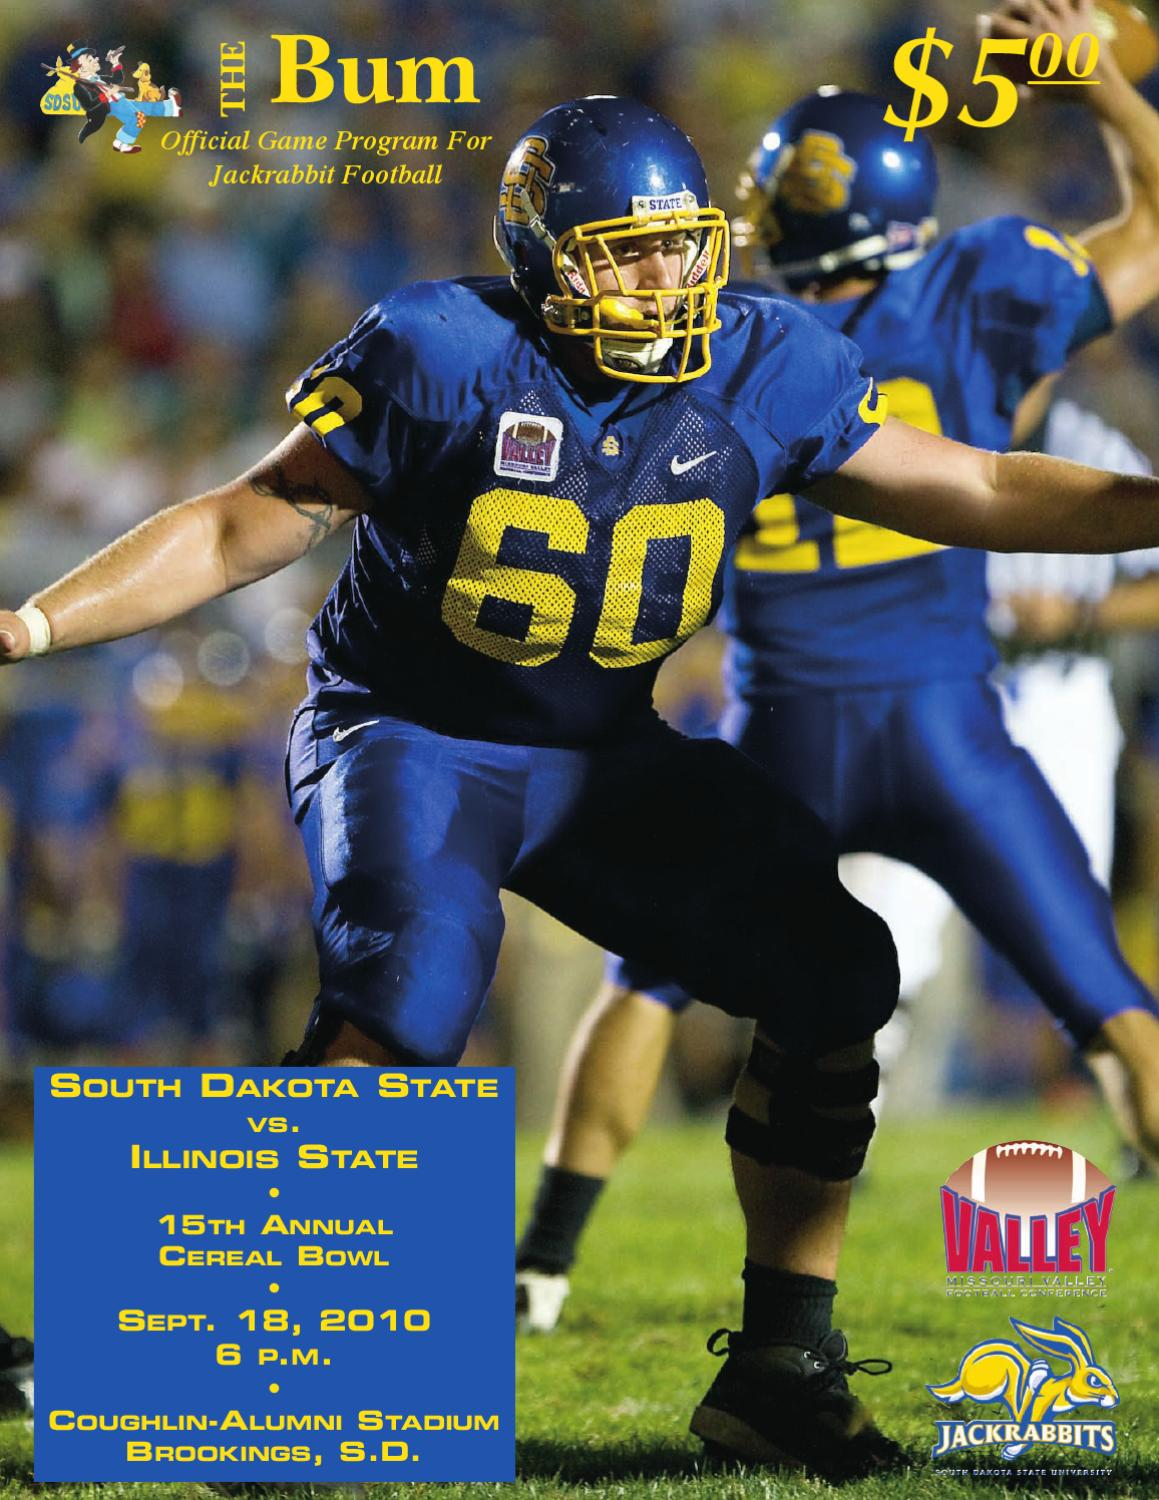 south dakota state football program 9 18 2010 by south dakota